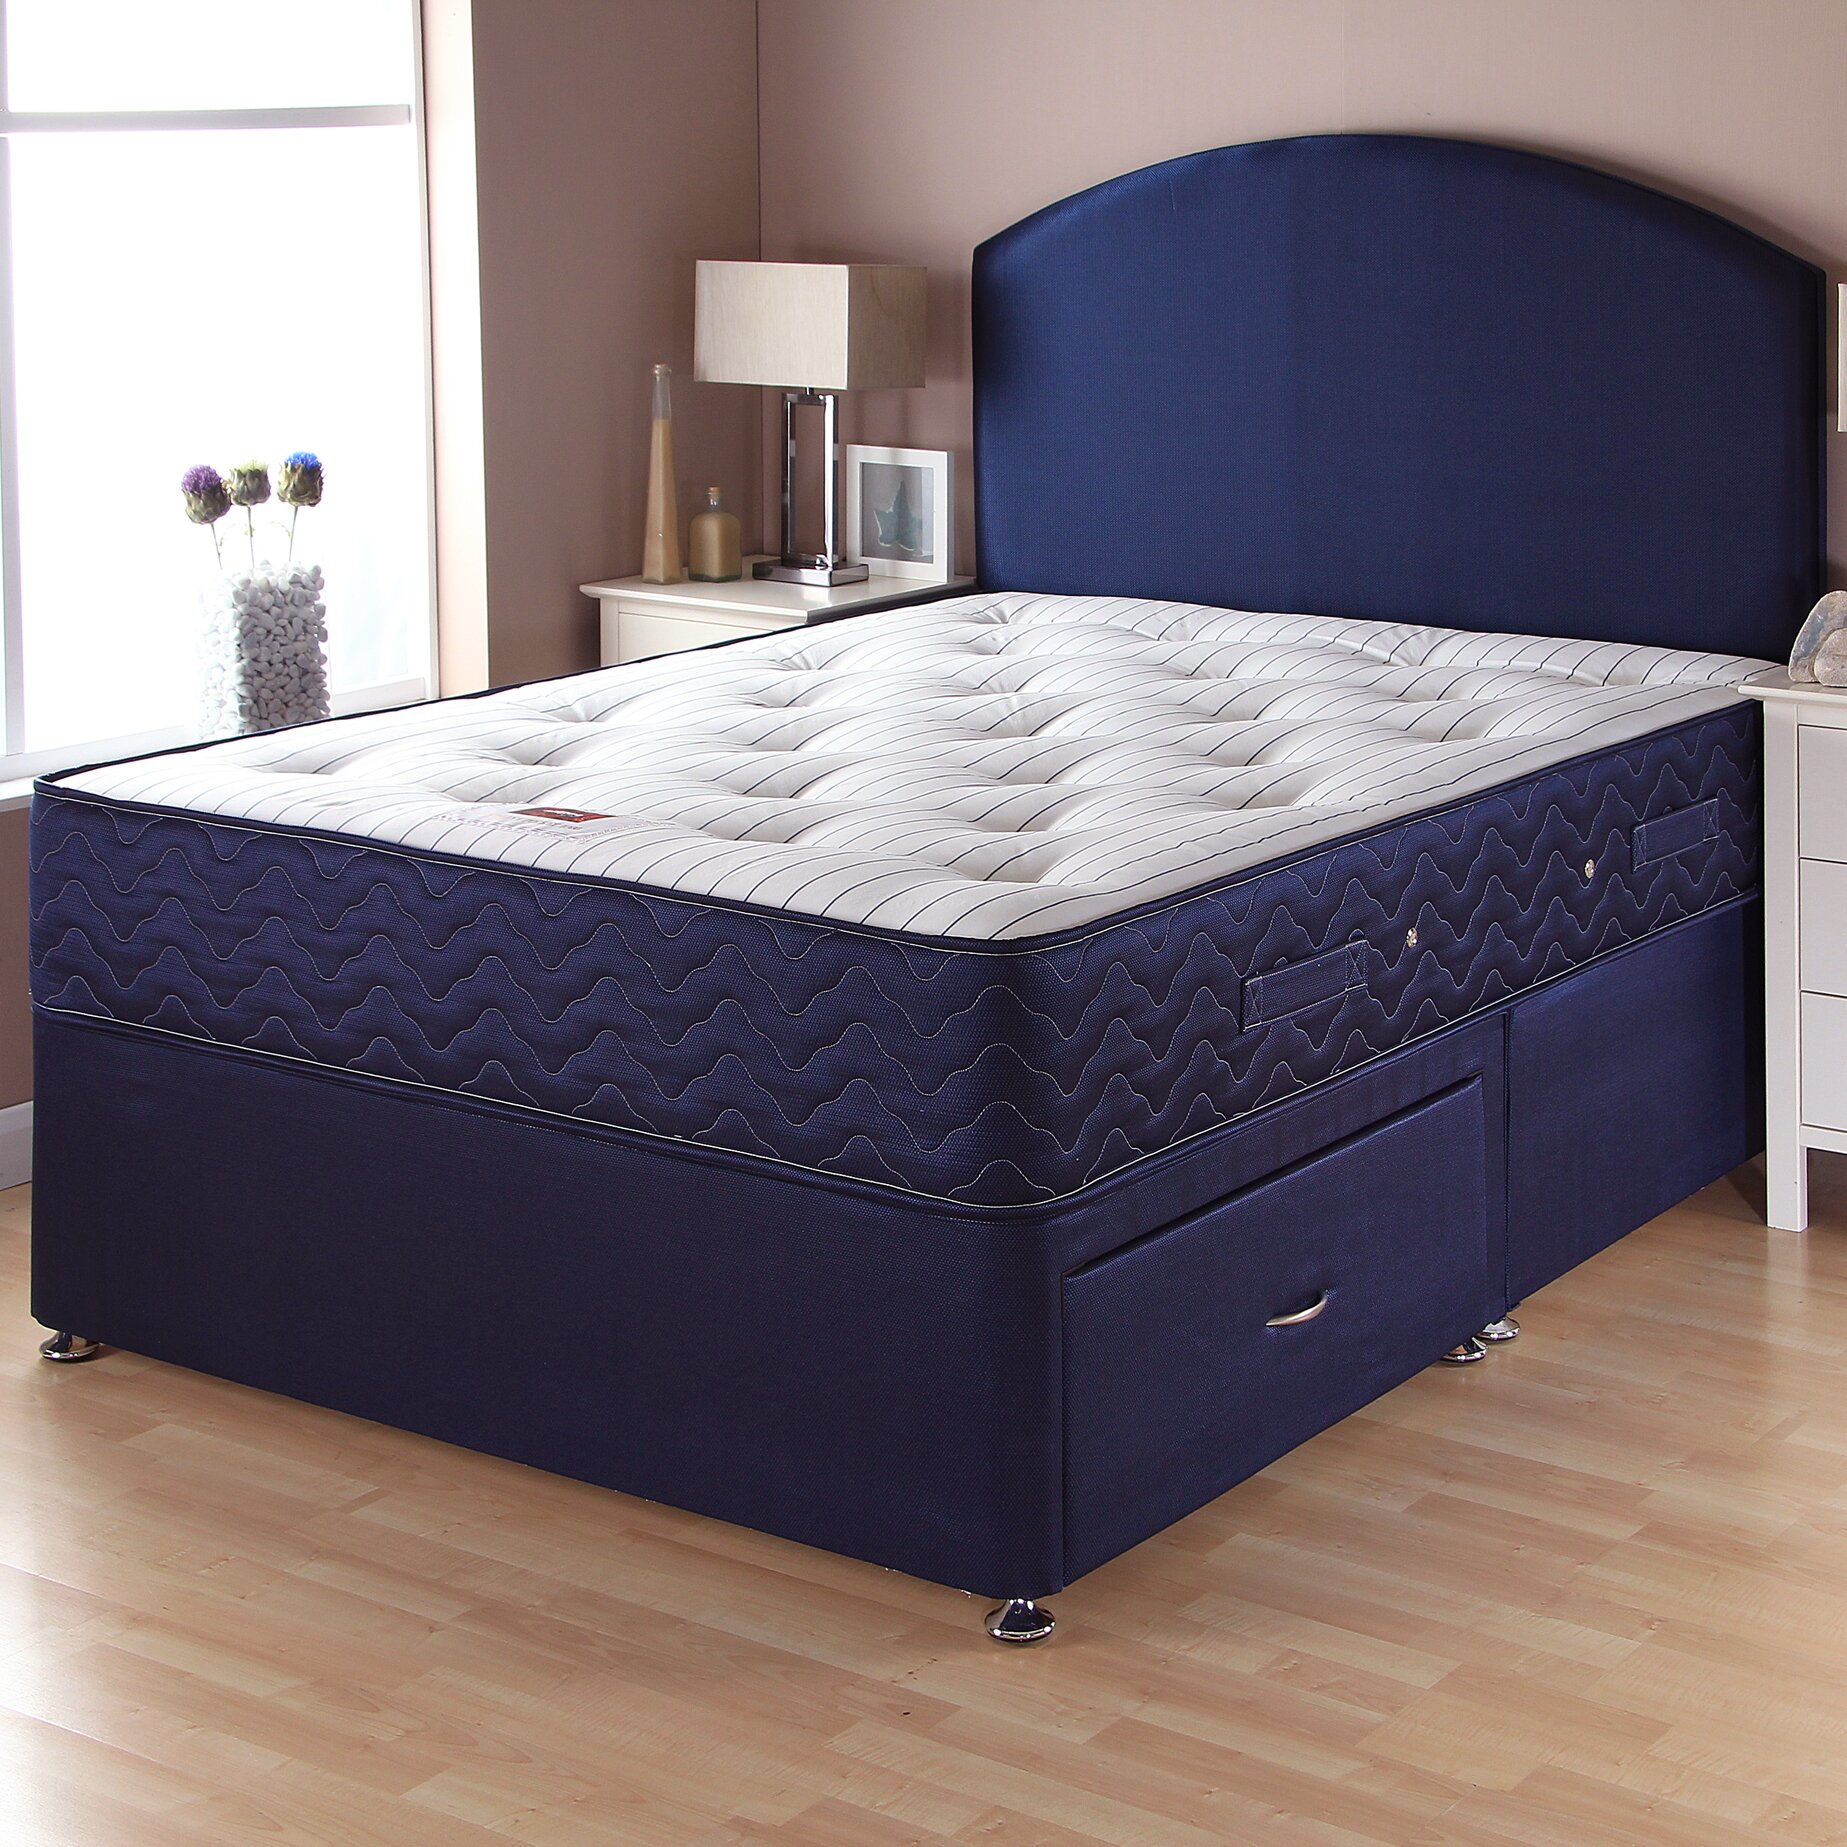 Airsprung Beds Catalina Pocket Sprung Divan Bed Wayfair Uk